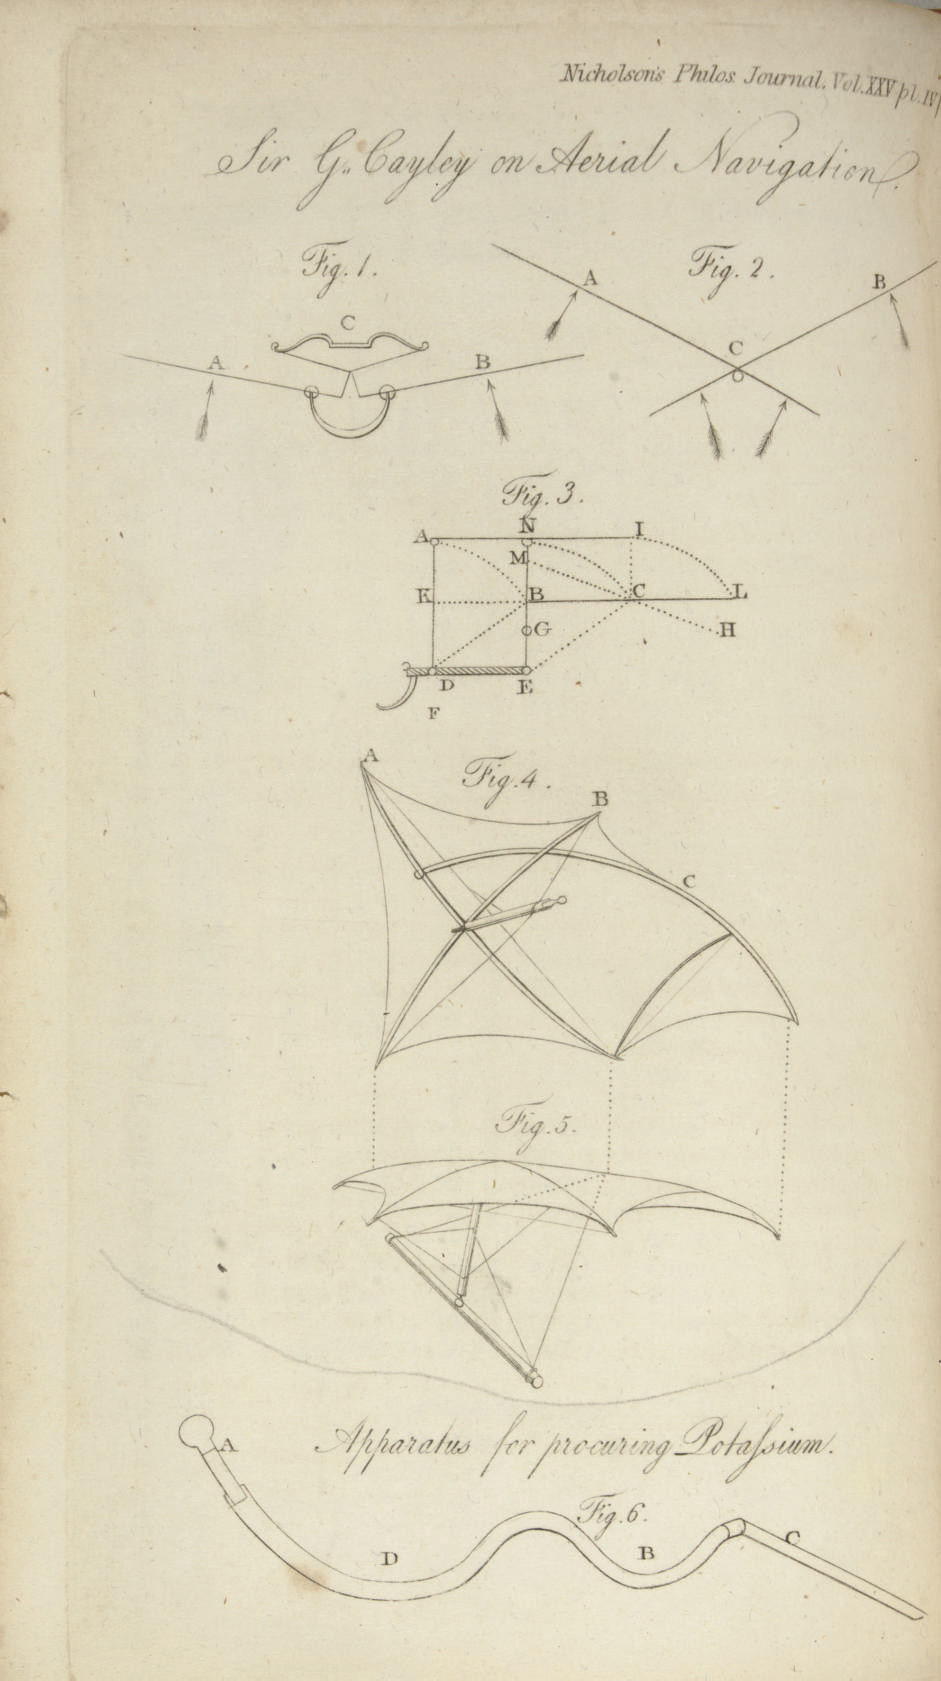 """CAYLEY, George (1773-1857). """"On aerial navigation."""" In: Journal of Natural Philosophy, Chemistry and the Arts, Vol. 24, pp.164-174; Vol. 25, pp.81-87 and 161-173. London: W. Stratford for W. Nicholson, 1809 (Vol. 24), 1810 (Vol. 25)."""